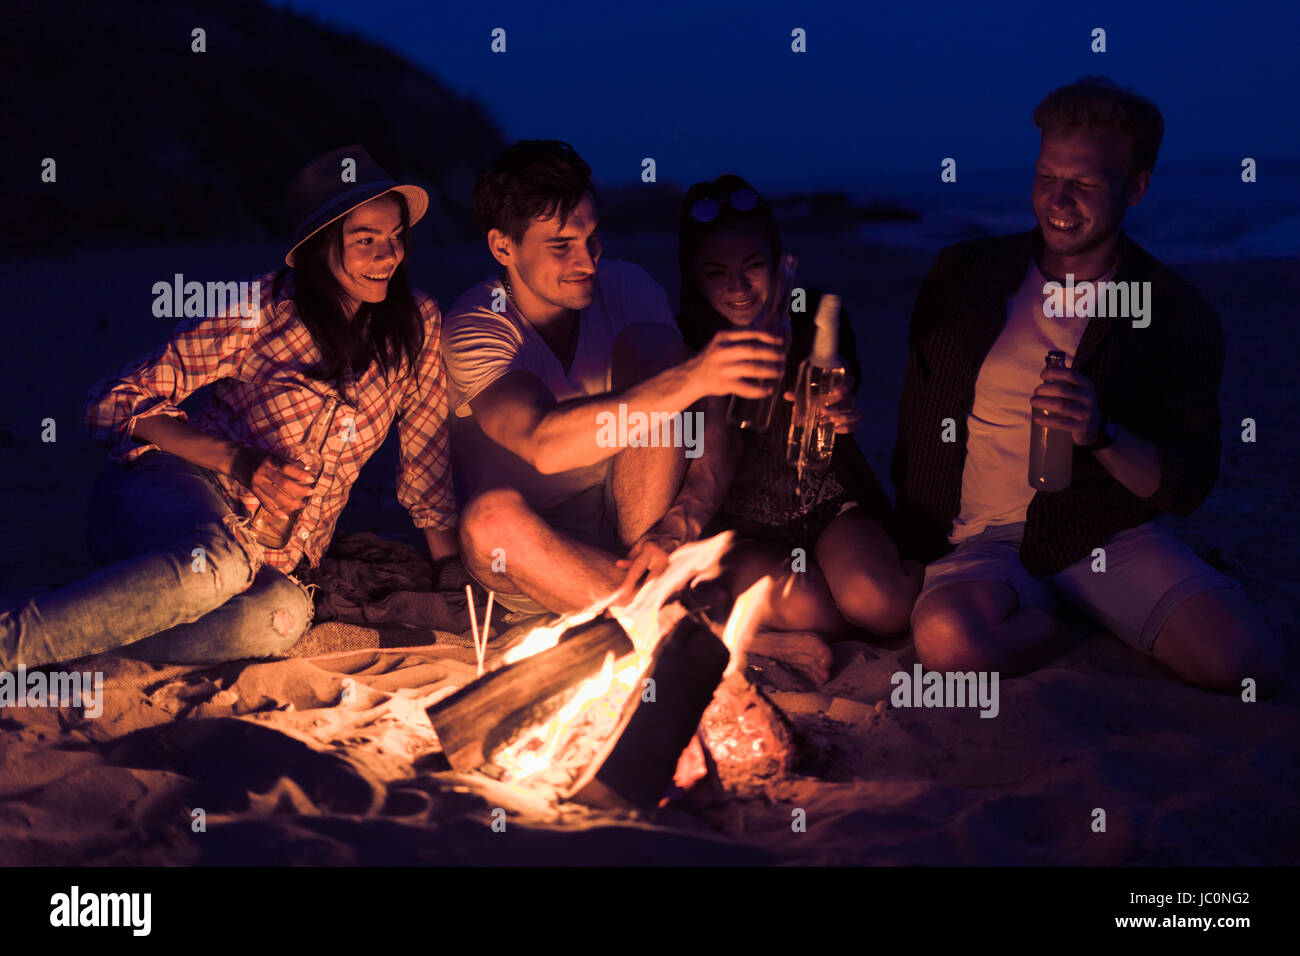 Amis assis sur la plage près de clink glasses bonfire Photo Stock